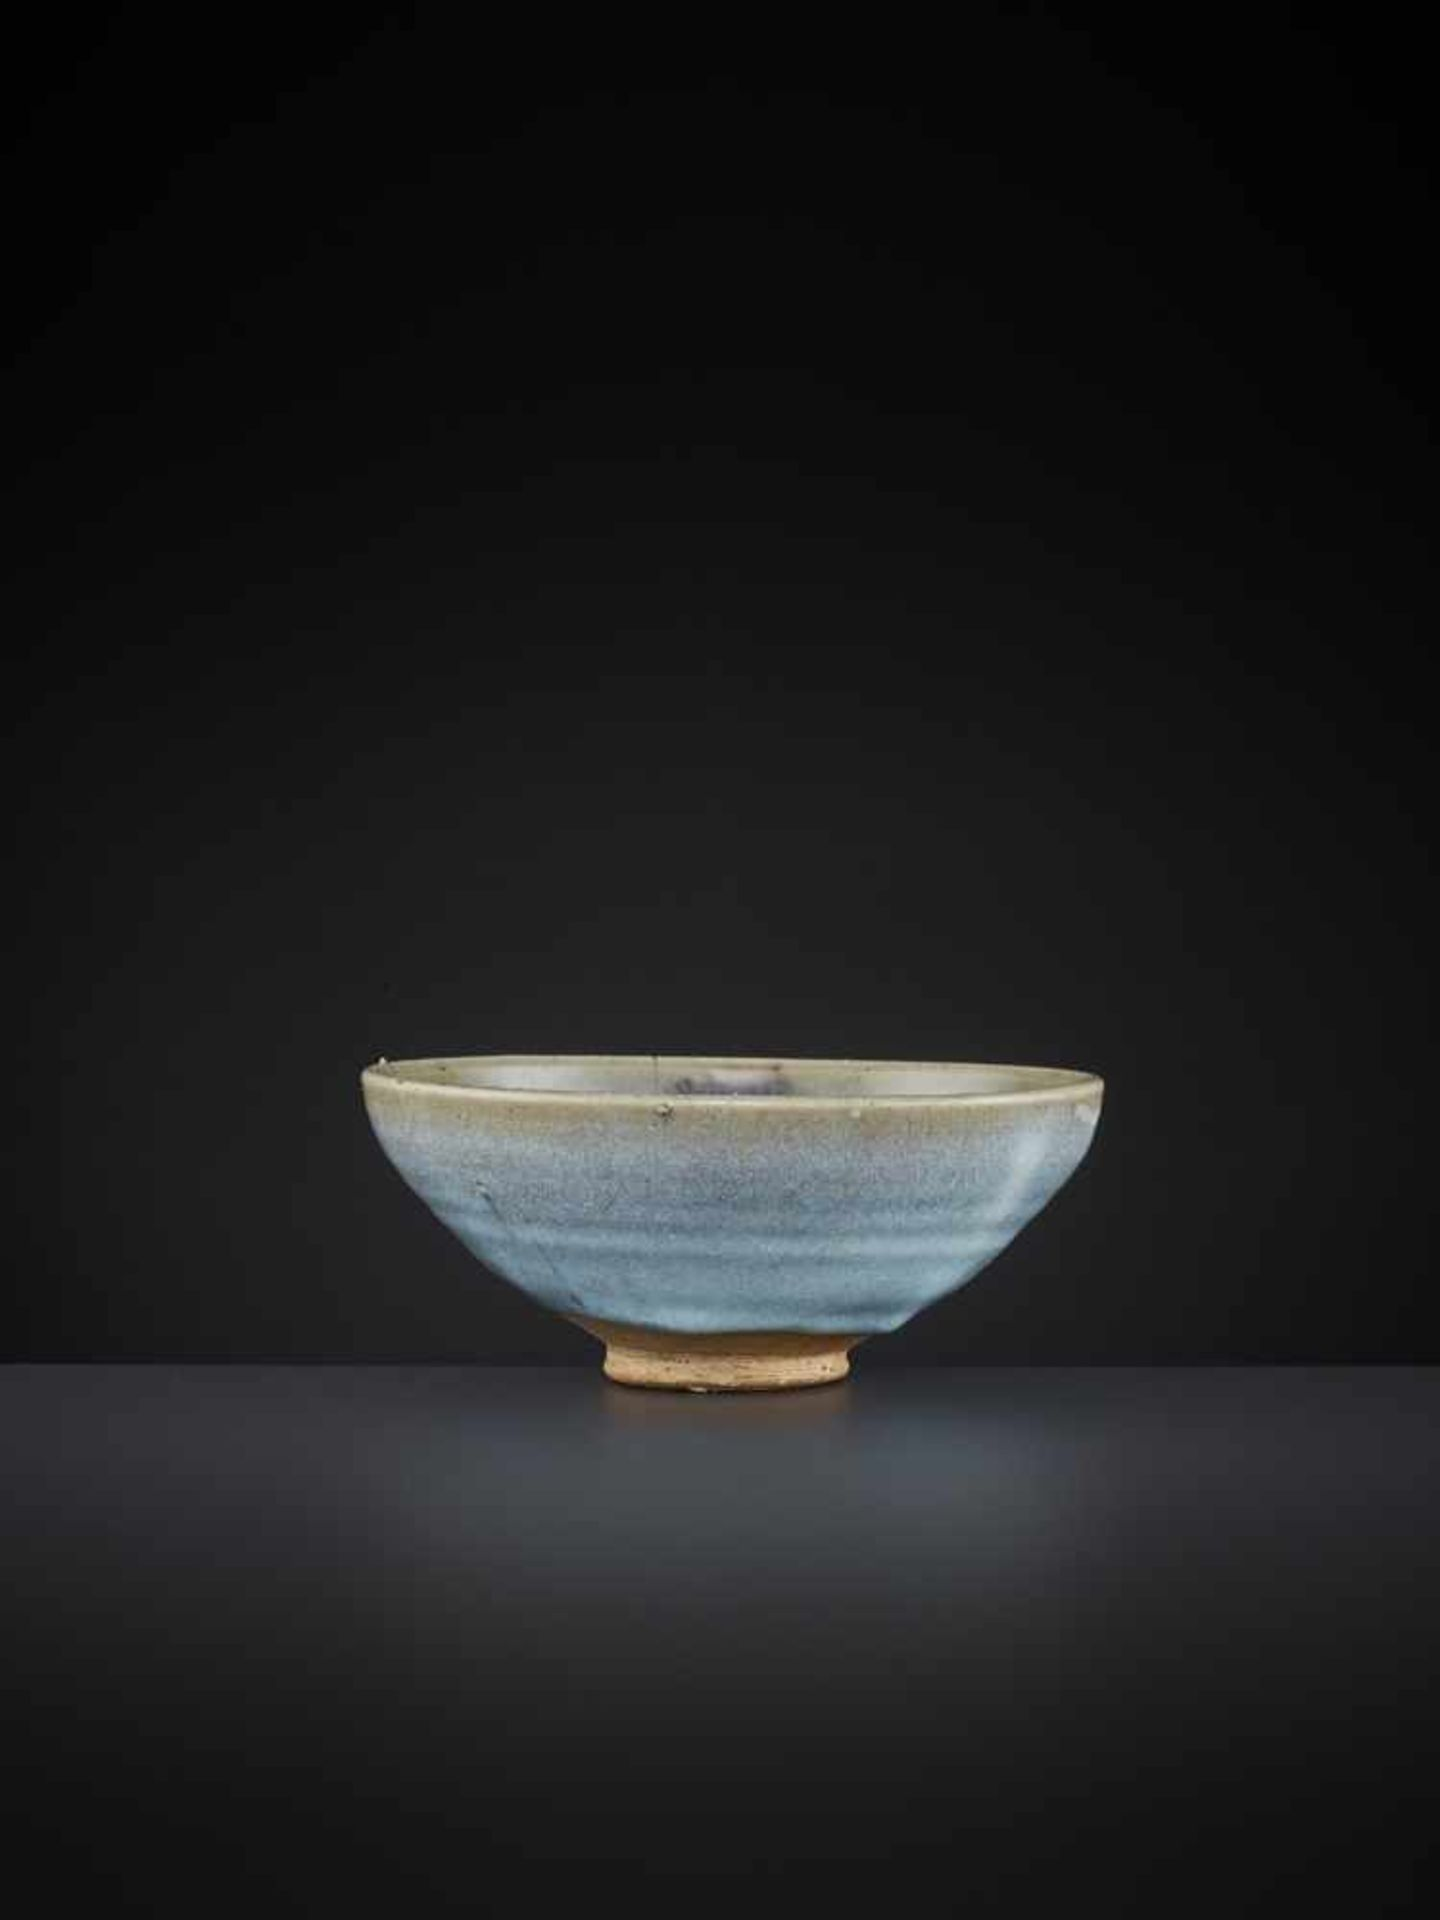 Los 409 - A JUNYAO CONICAL BOWL, 13TH-14TH CENTURY